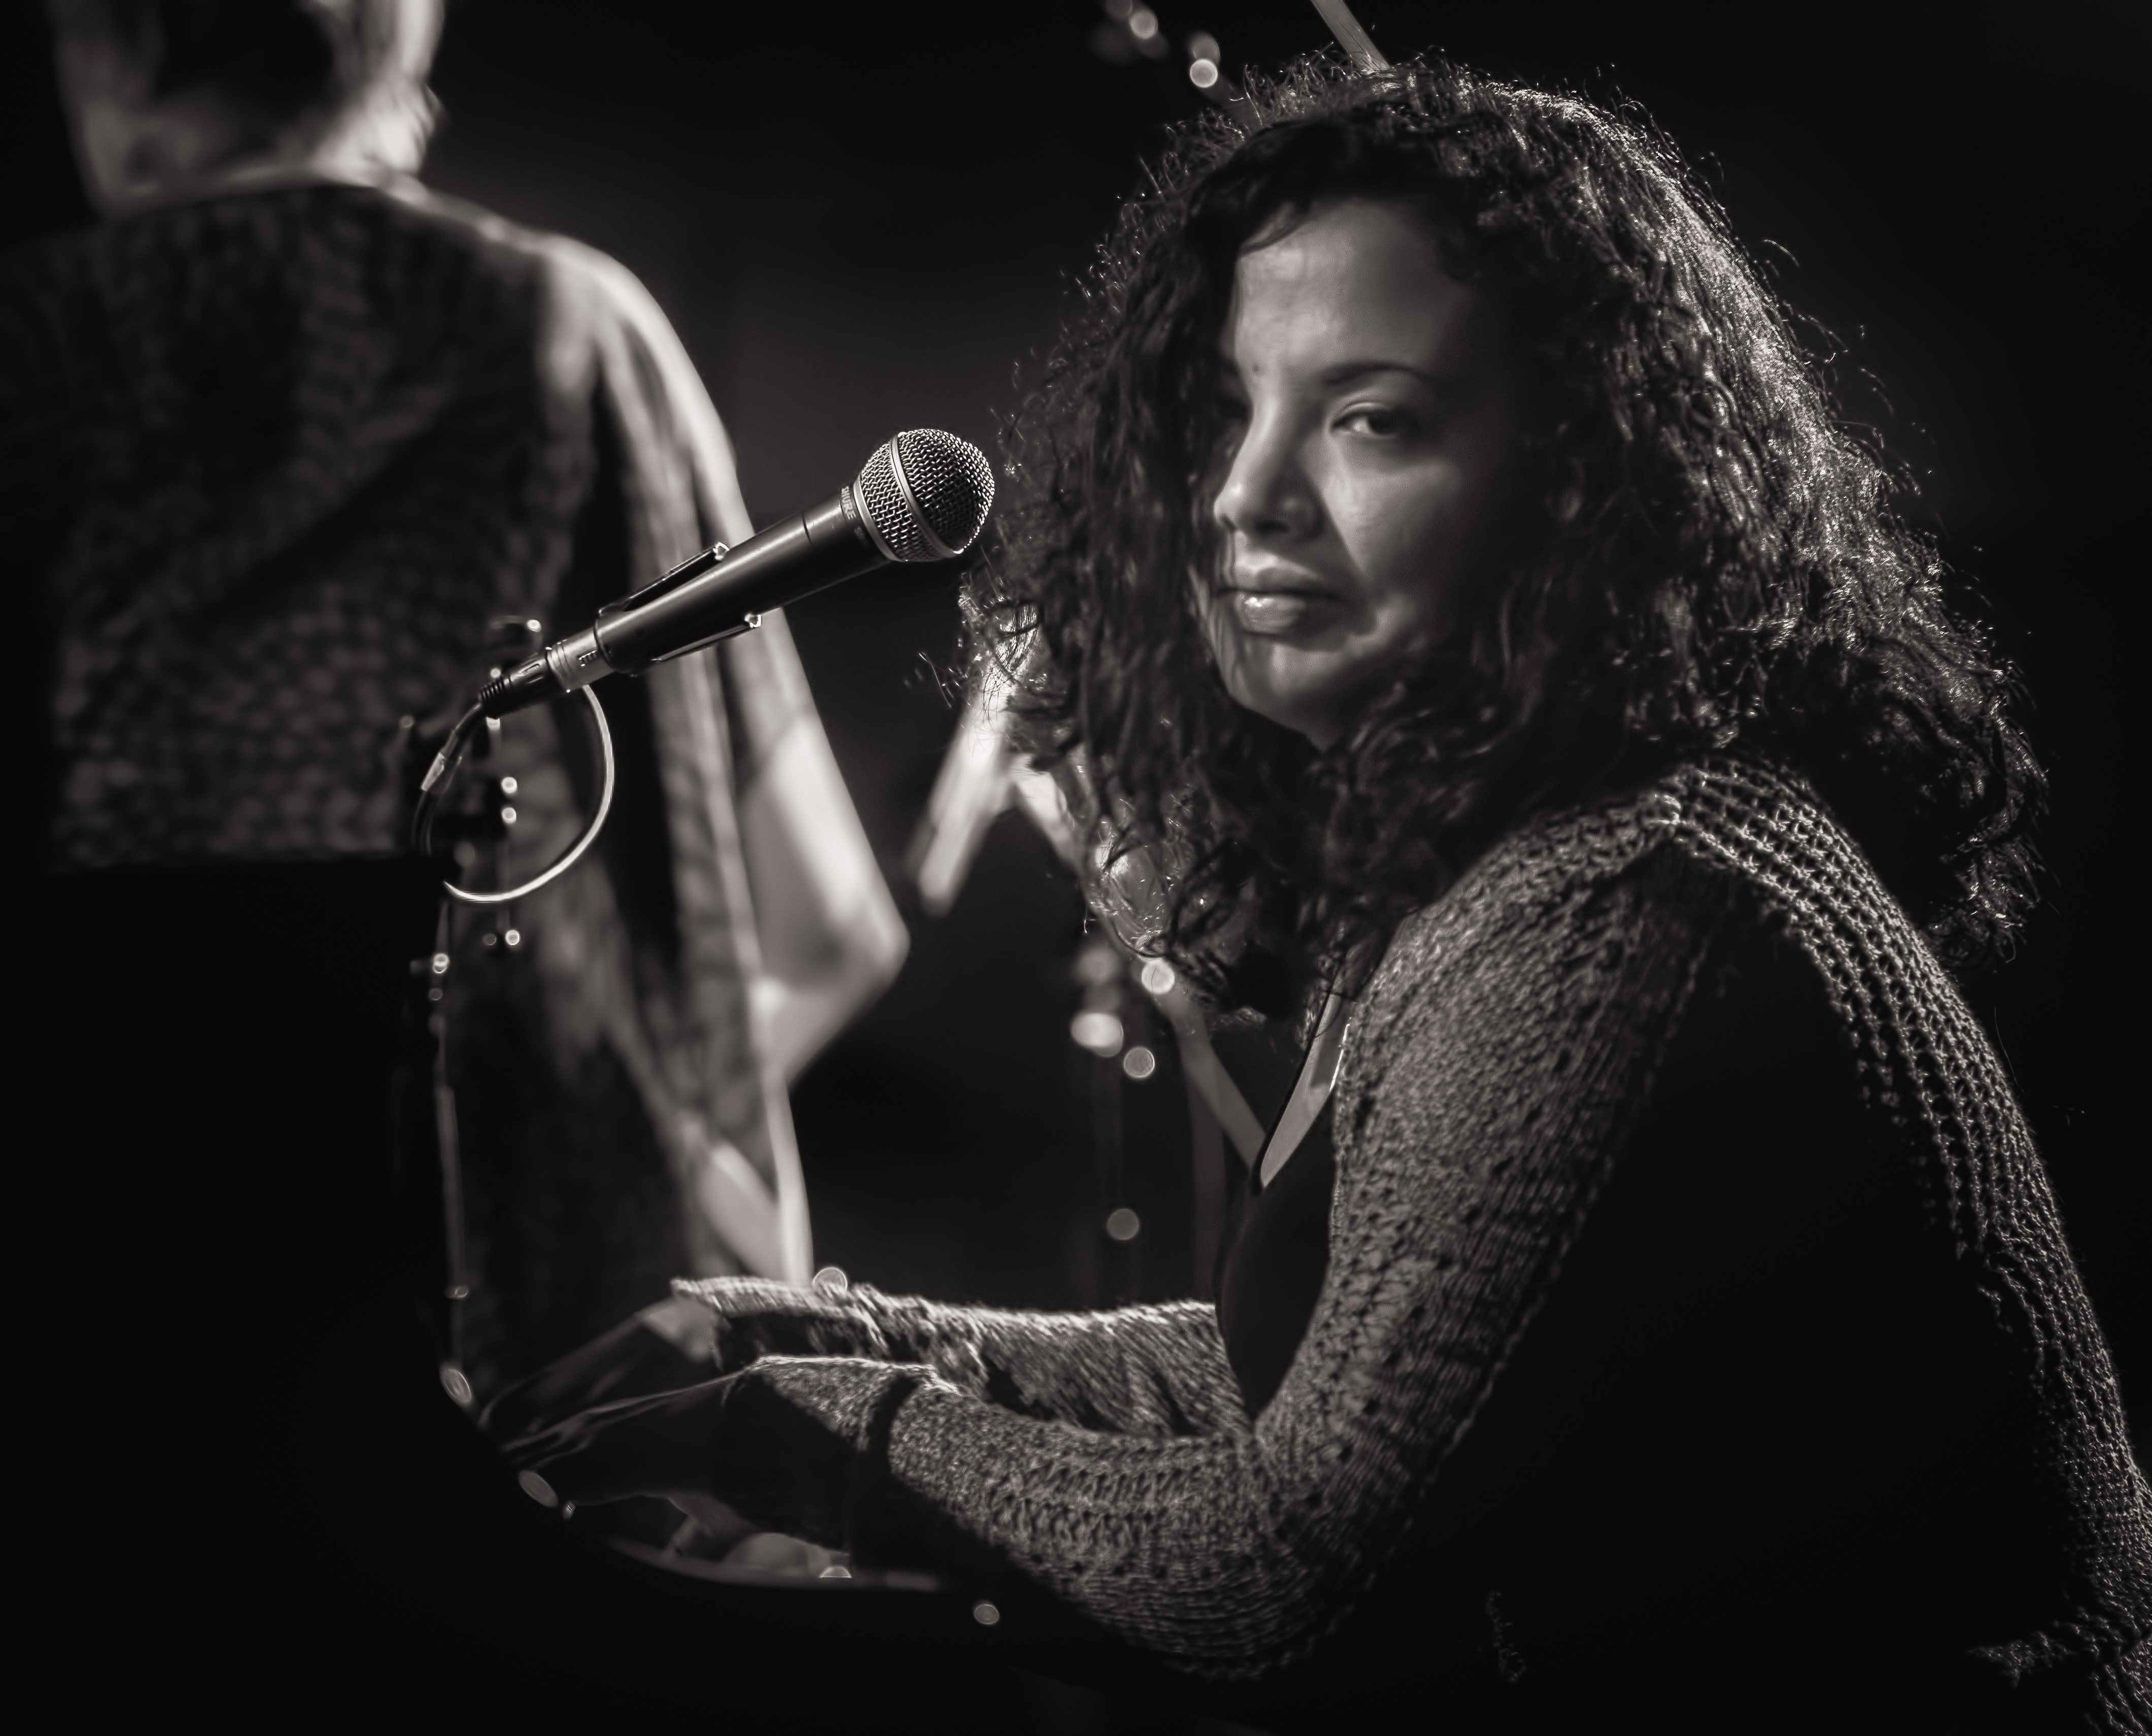 Dánae Olano with Jane Bunnett and Maqueque at the Monterey Jazz Festival 2018